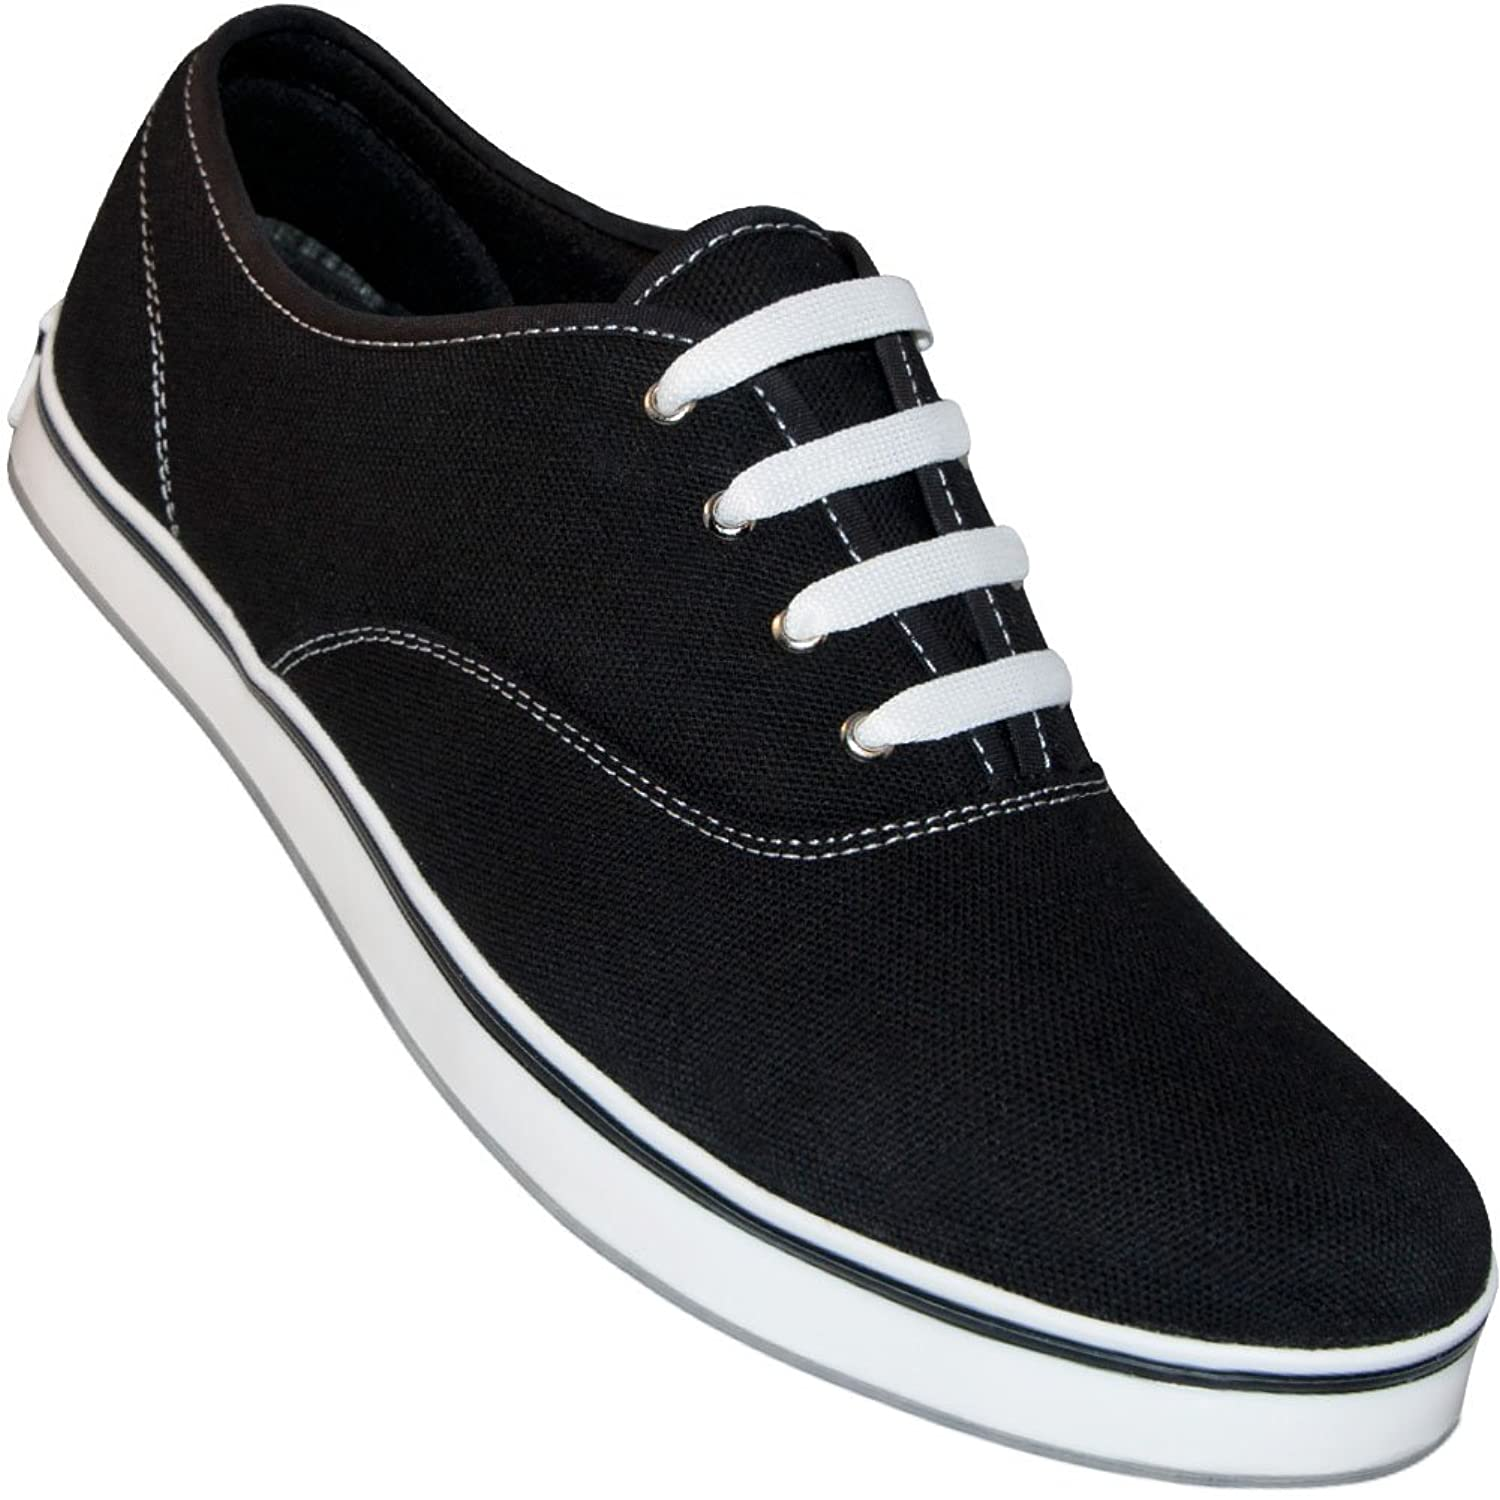 Retro Style Dance Shoes Aris Allen Mens Black Classic Dress Dance Sneaker $48.95 AT vintagedancer.com